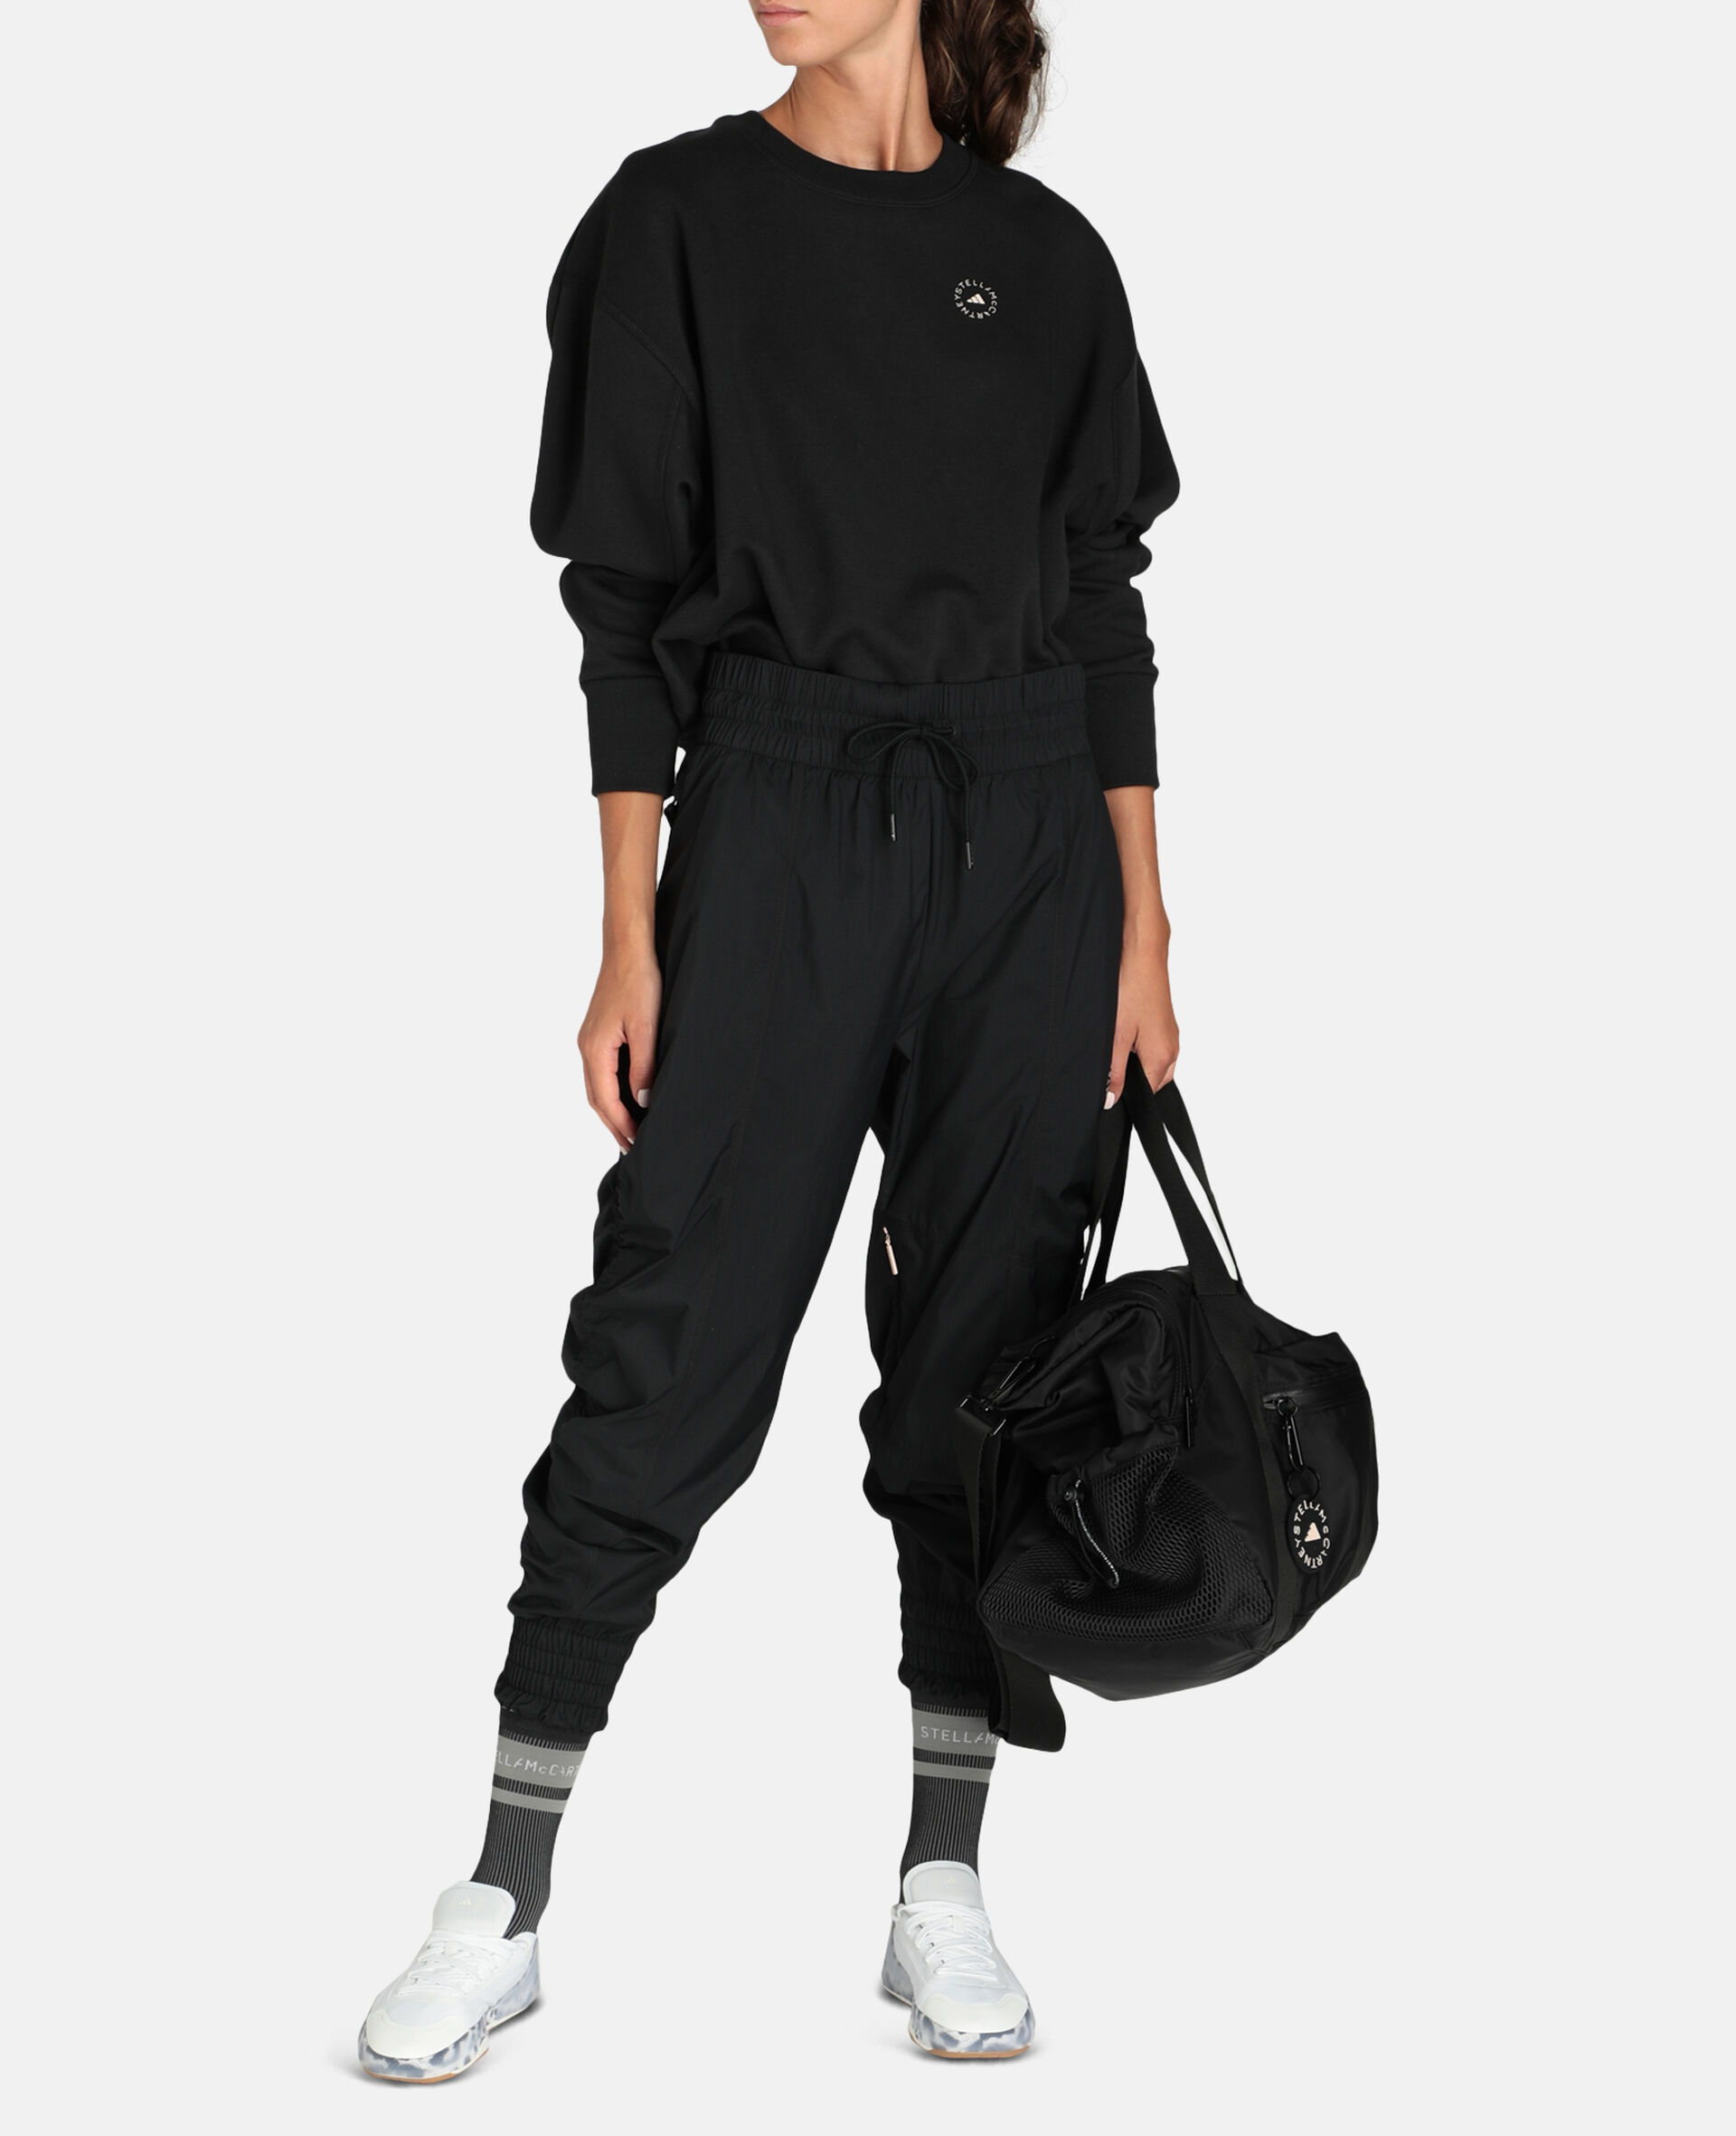 Black Woven Training Trousers-Black-large image number 1